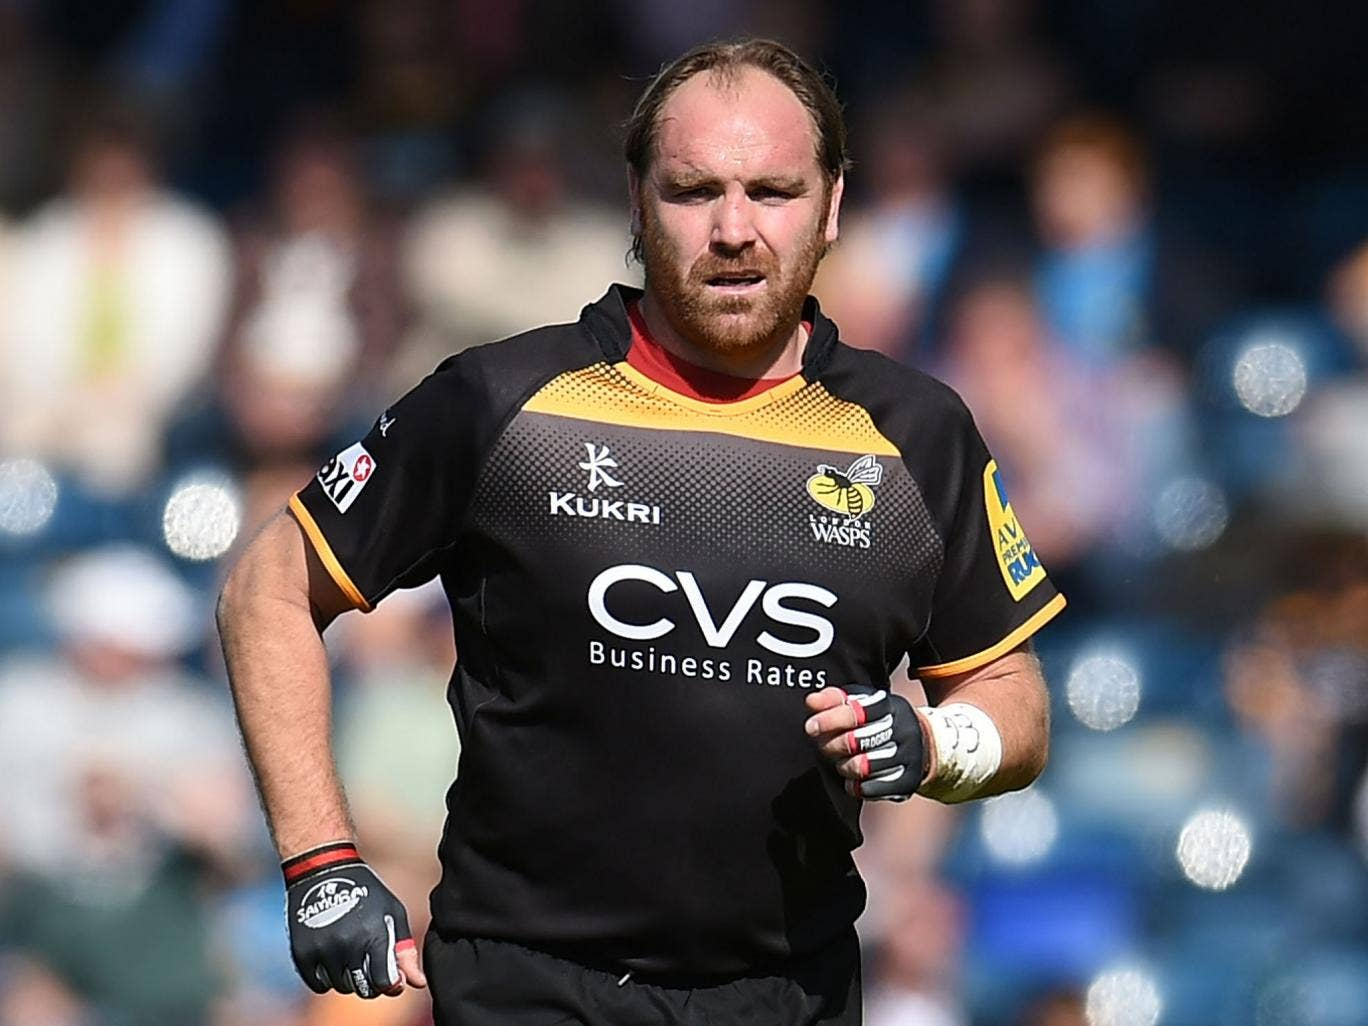 Andy Goode in action for Wasps against Newcastle on Saturday